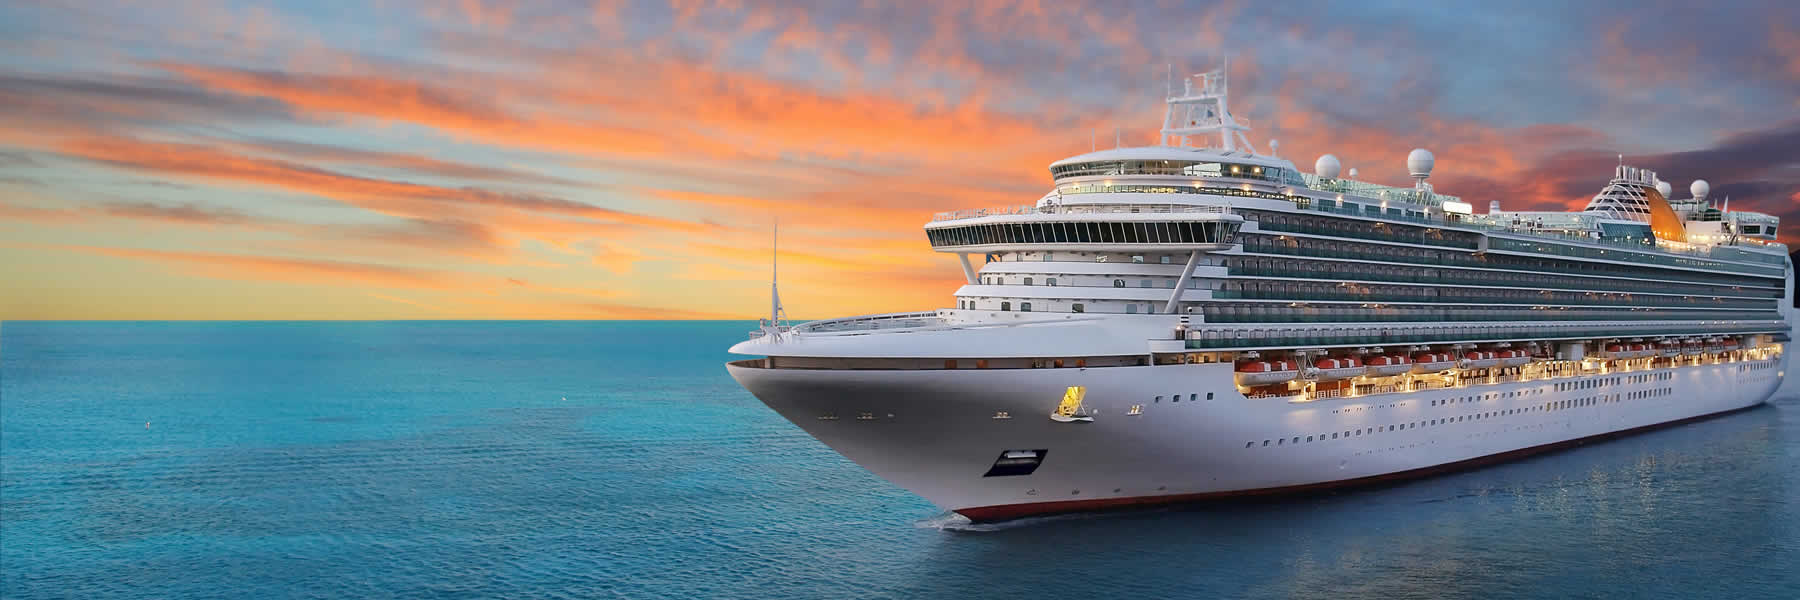 Book your cruise with Mode Travel Agency of Fargo, North Dakota.